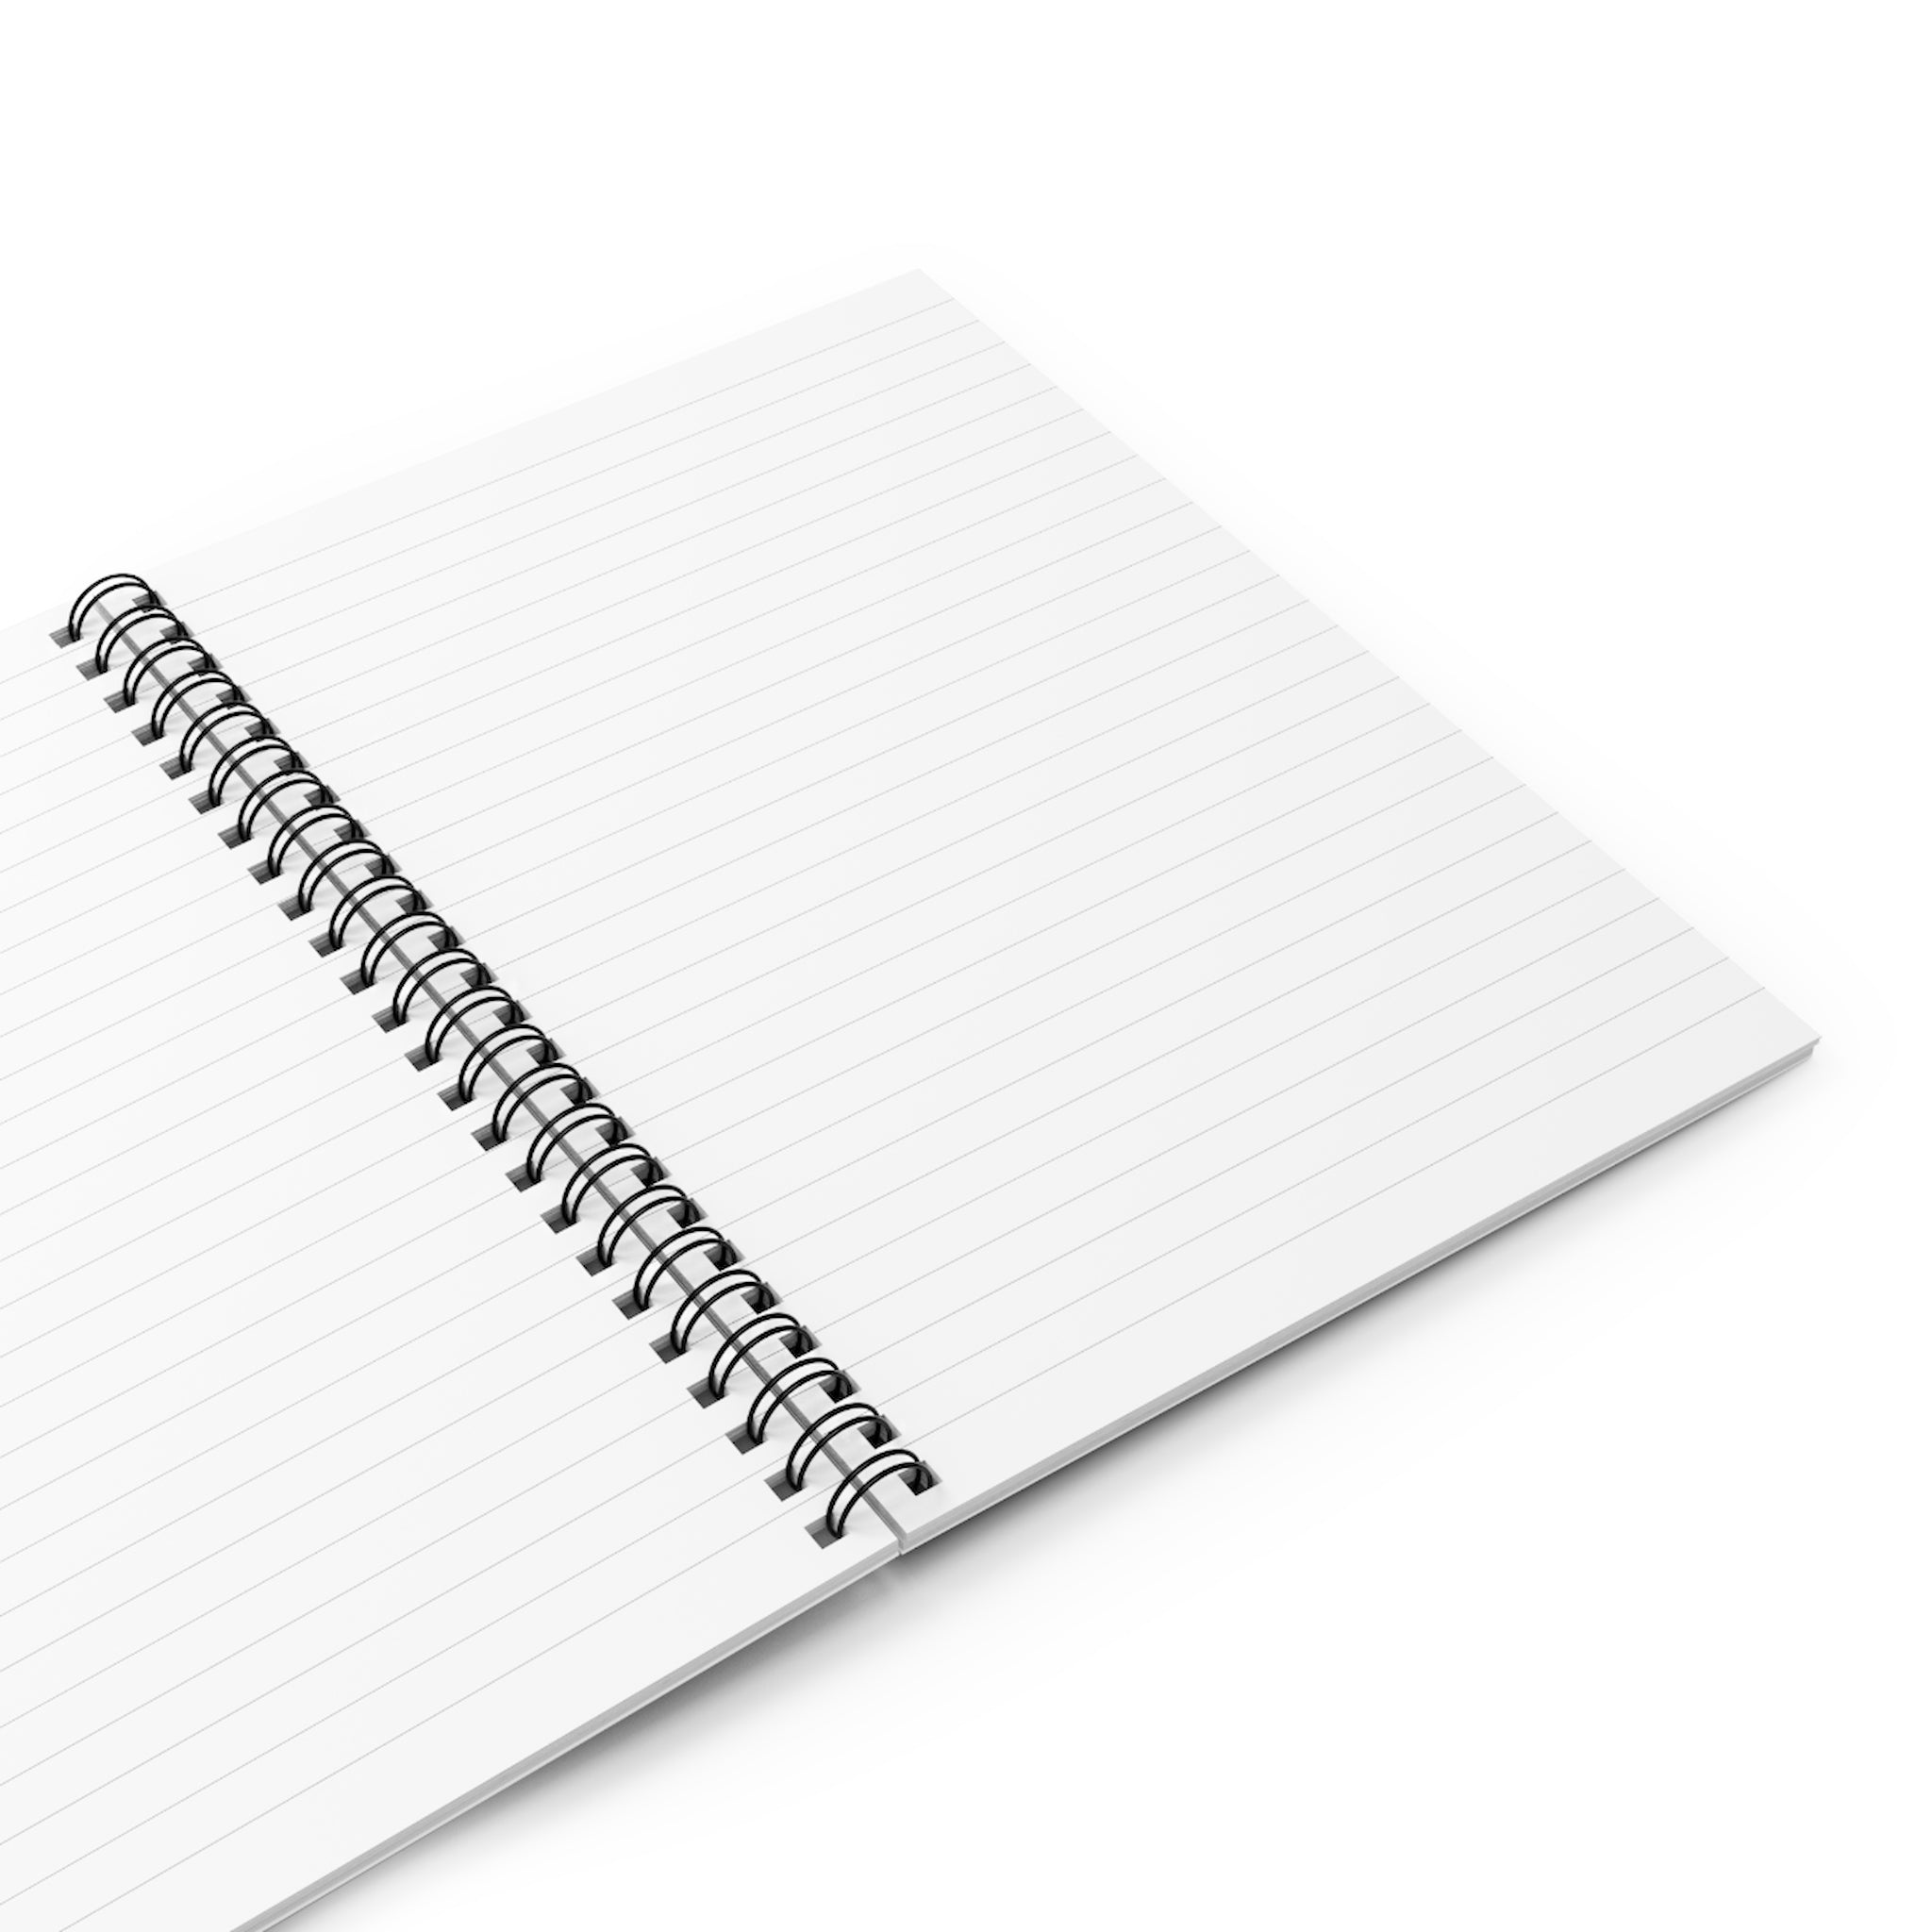 Dockerfile cheat sheet - Spiral Notebook - Ruled Line - Remember The API